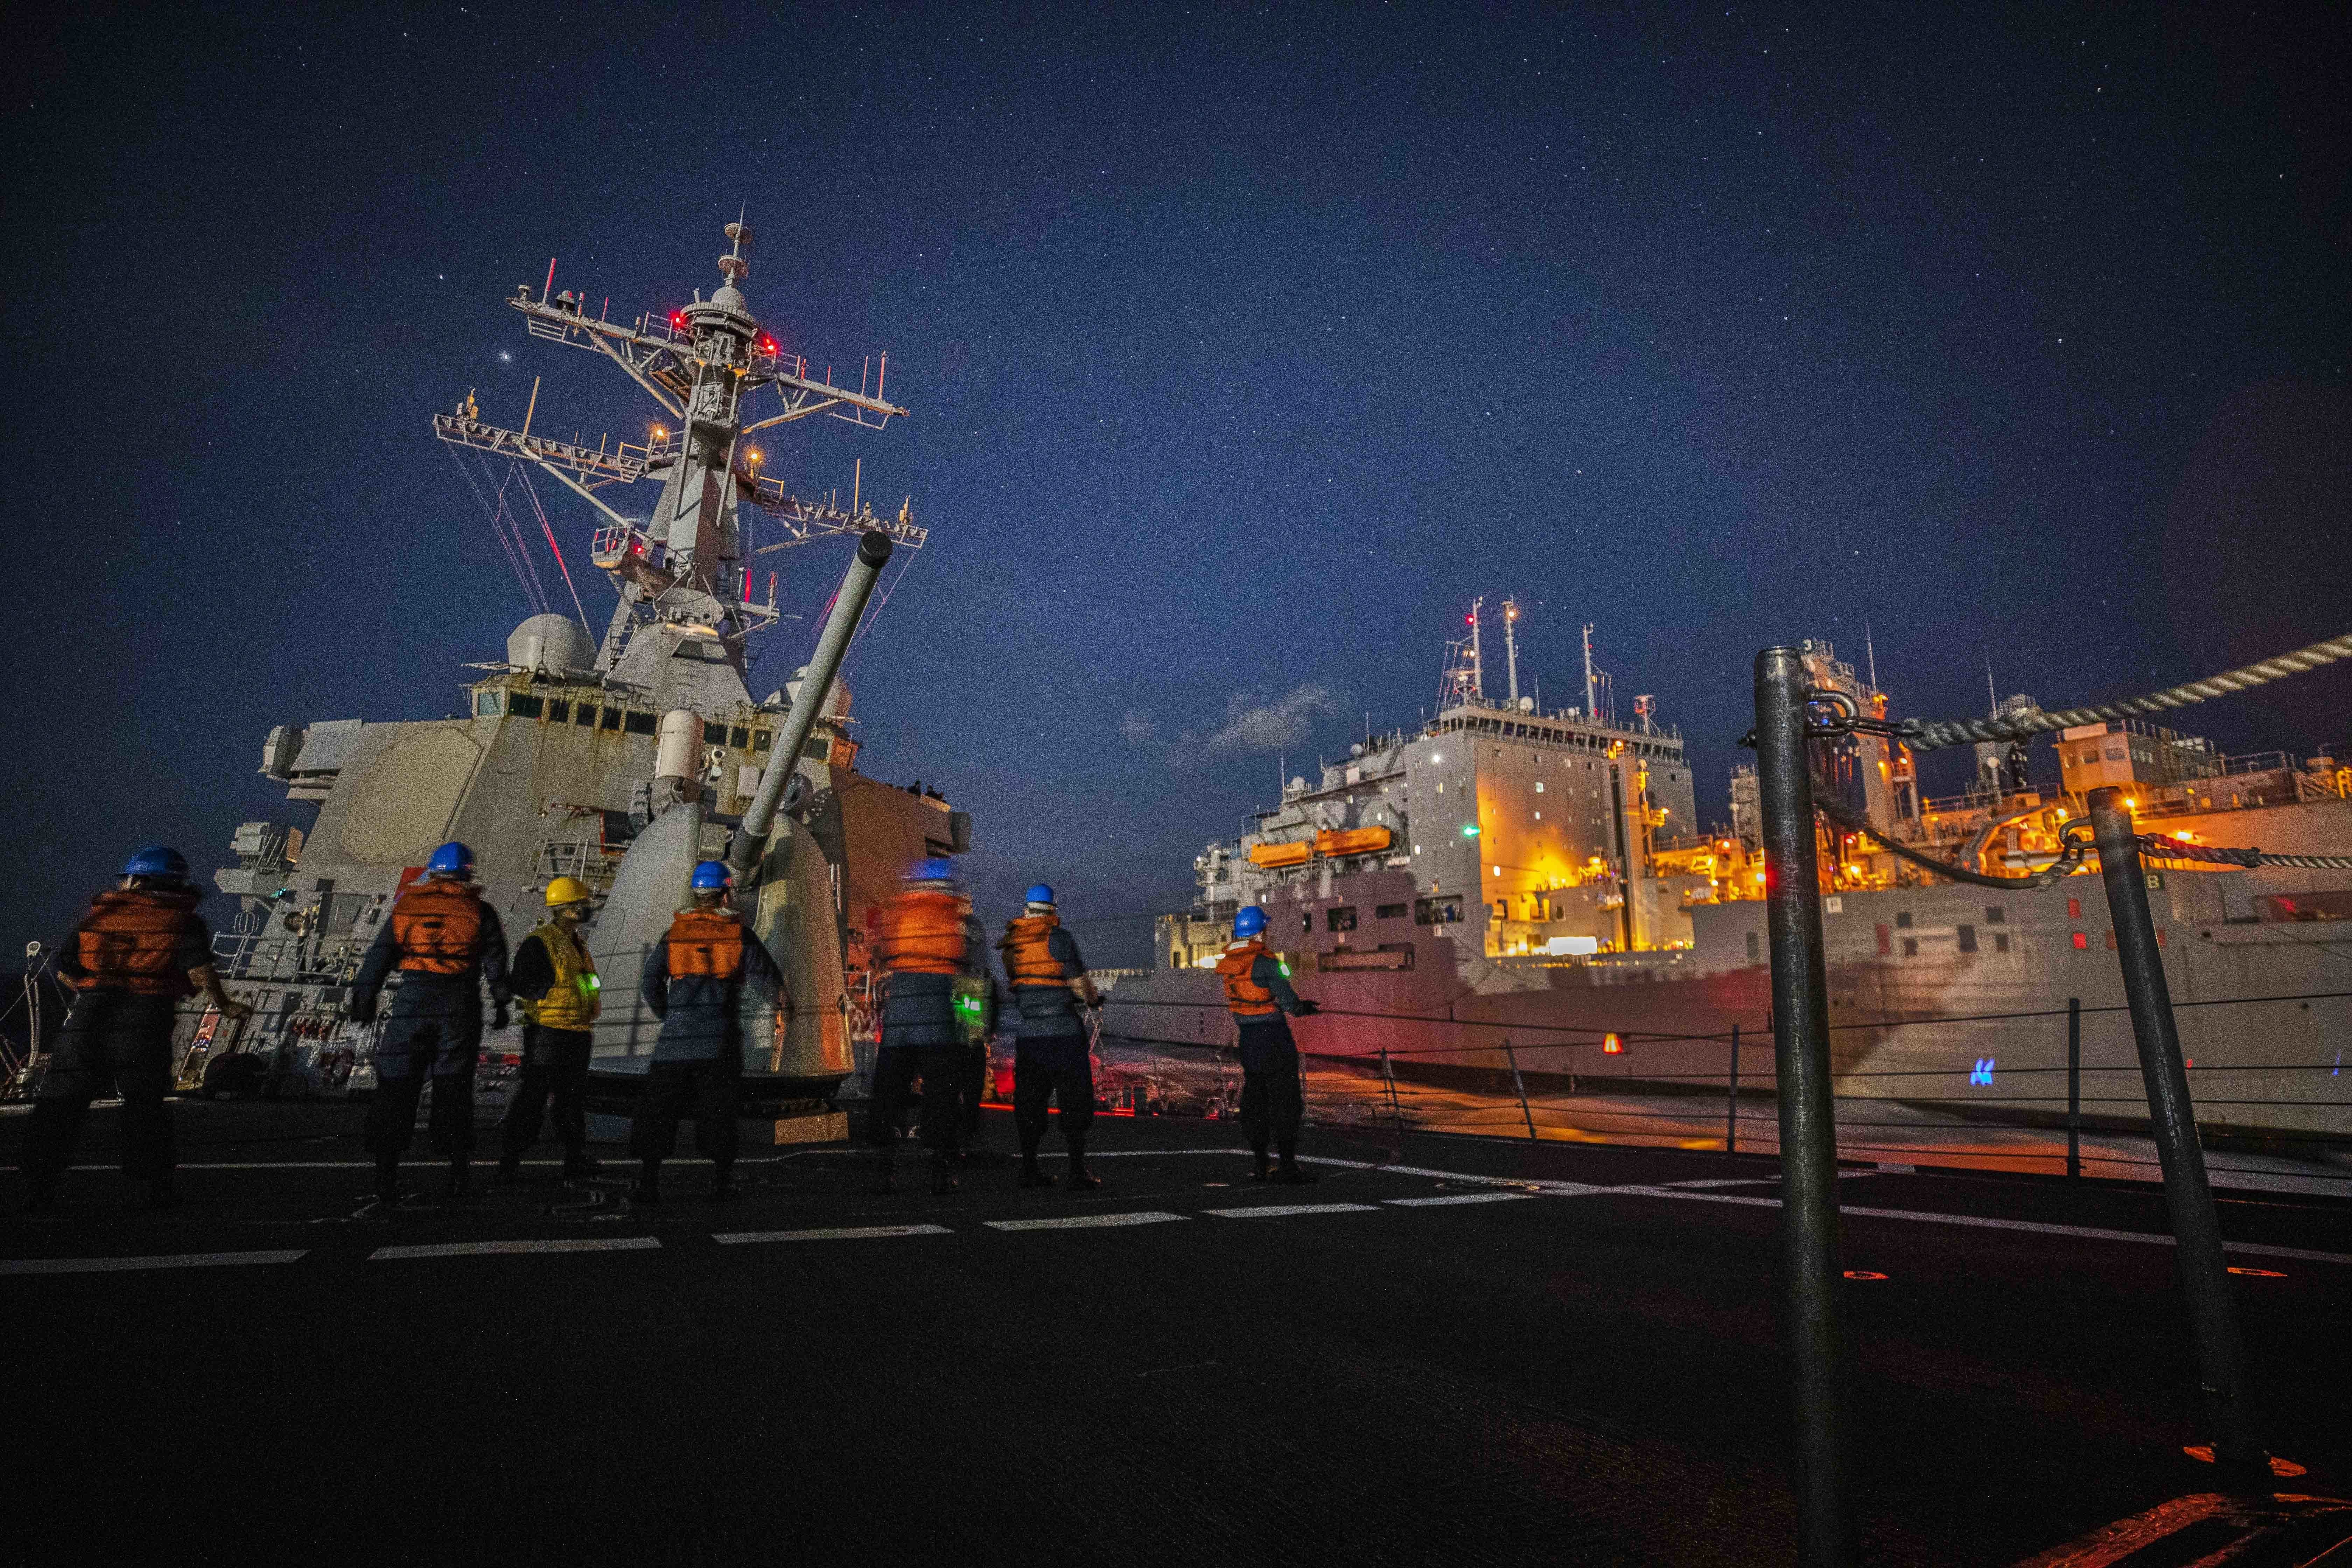 USS John S. McCain (DDG 56) conducts a replenishment-at-sea with USNS Charles Drew (T-AKE 10).